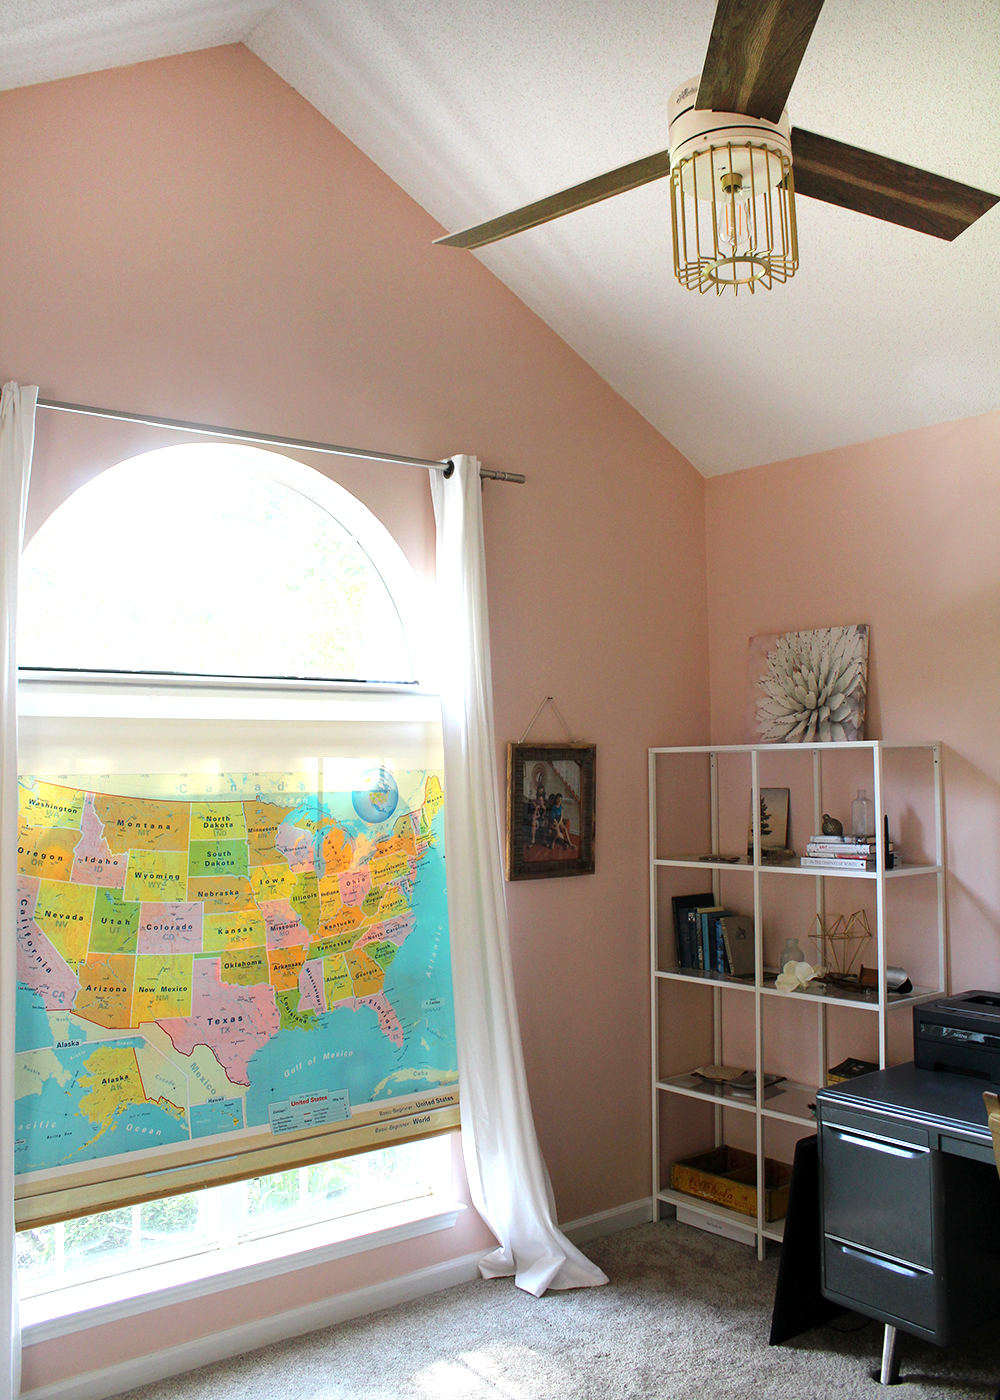 DIY Thrifted Map Upcyled to a Window Shade   tag&tibby